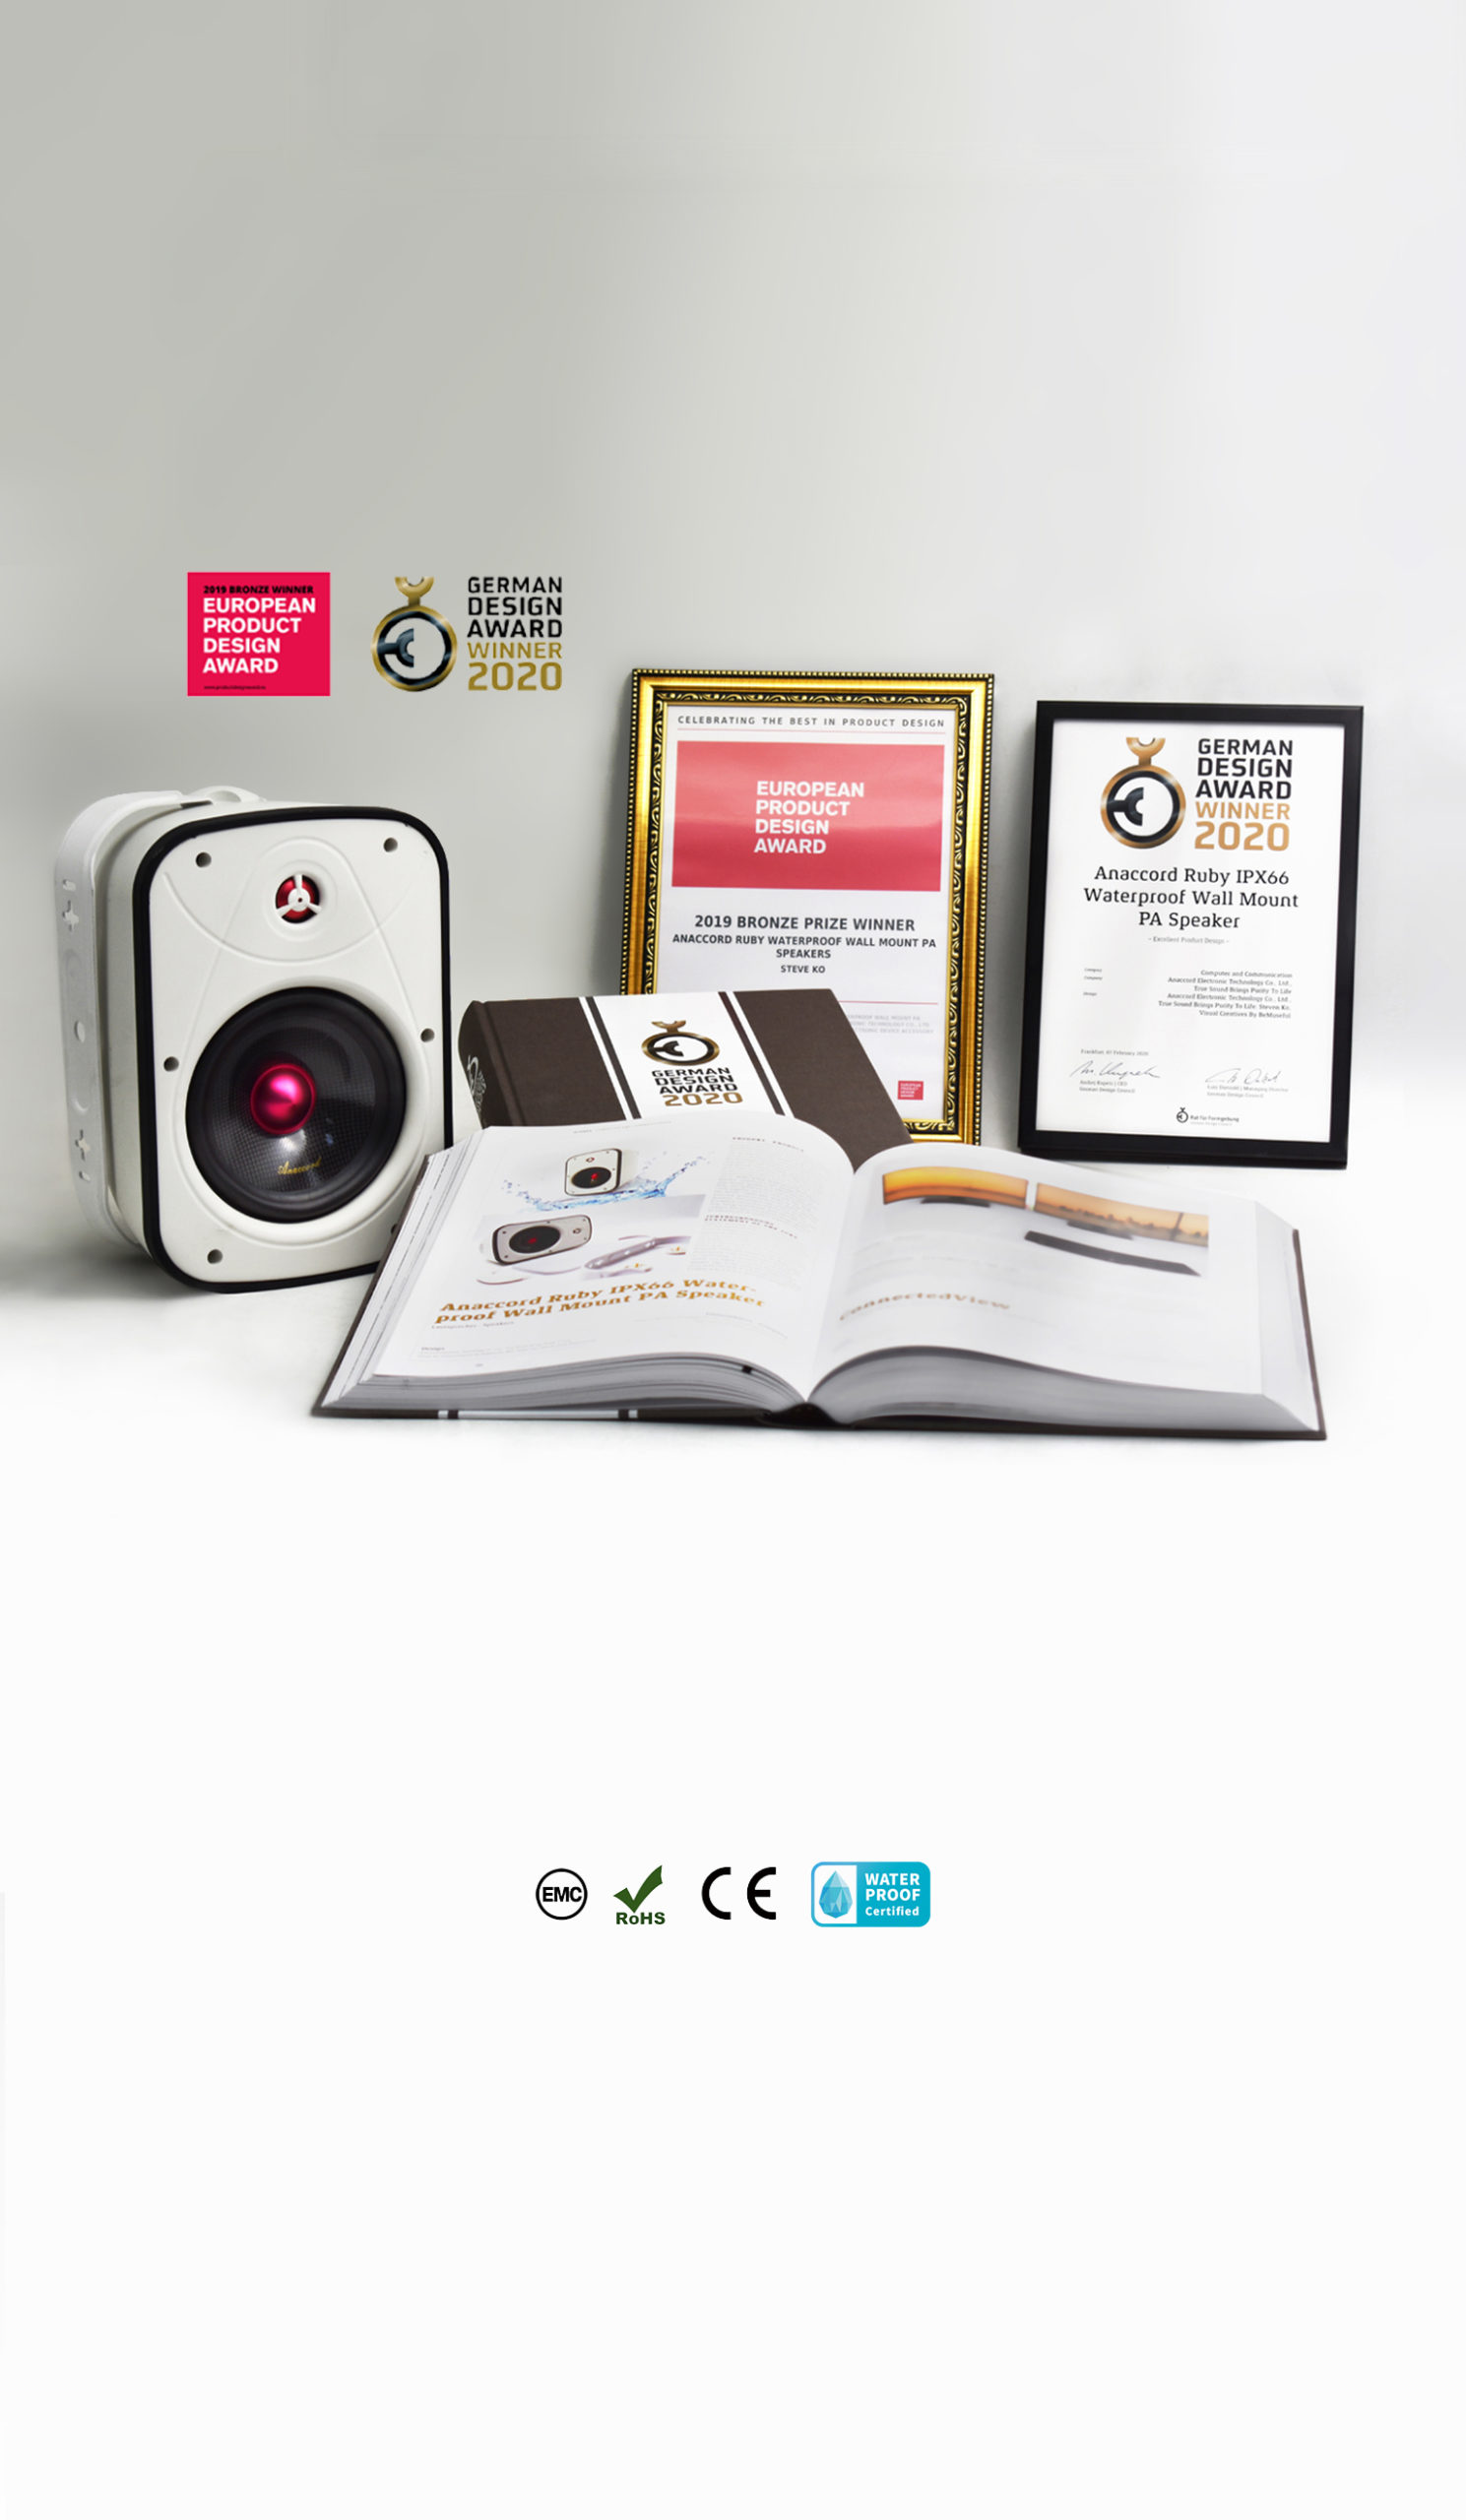 EPDA-European-Product-Design-Awards-and-GDA-german-design-award-2020-Anaccord-home-mobile